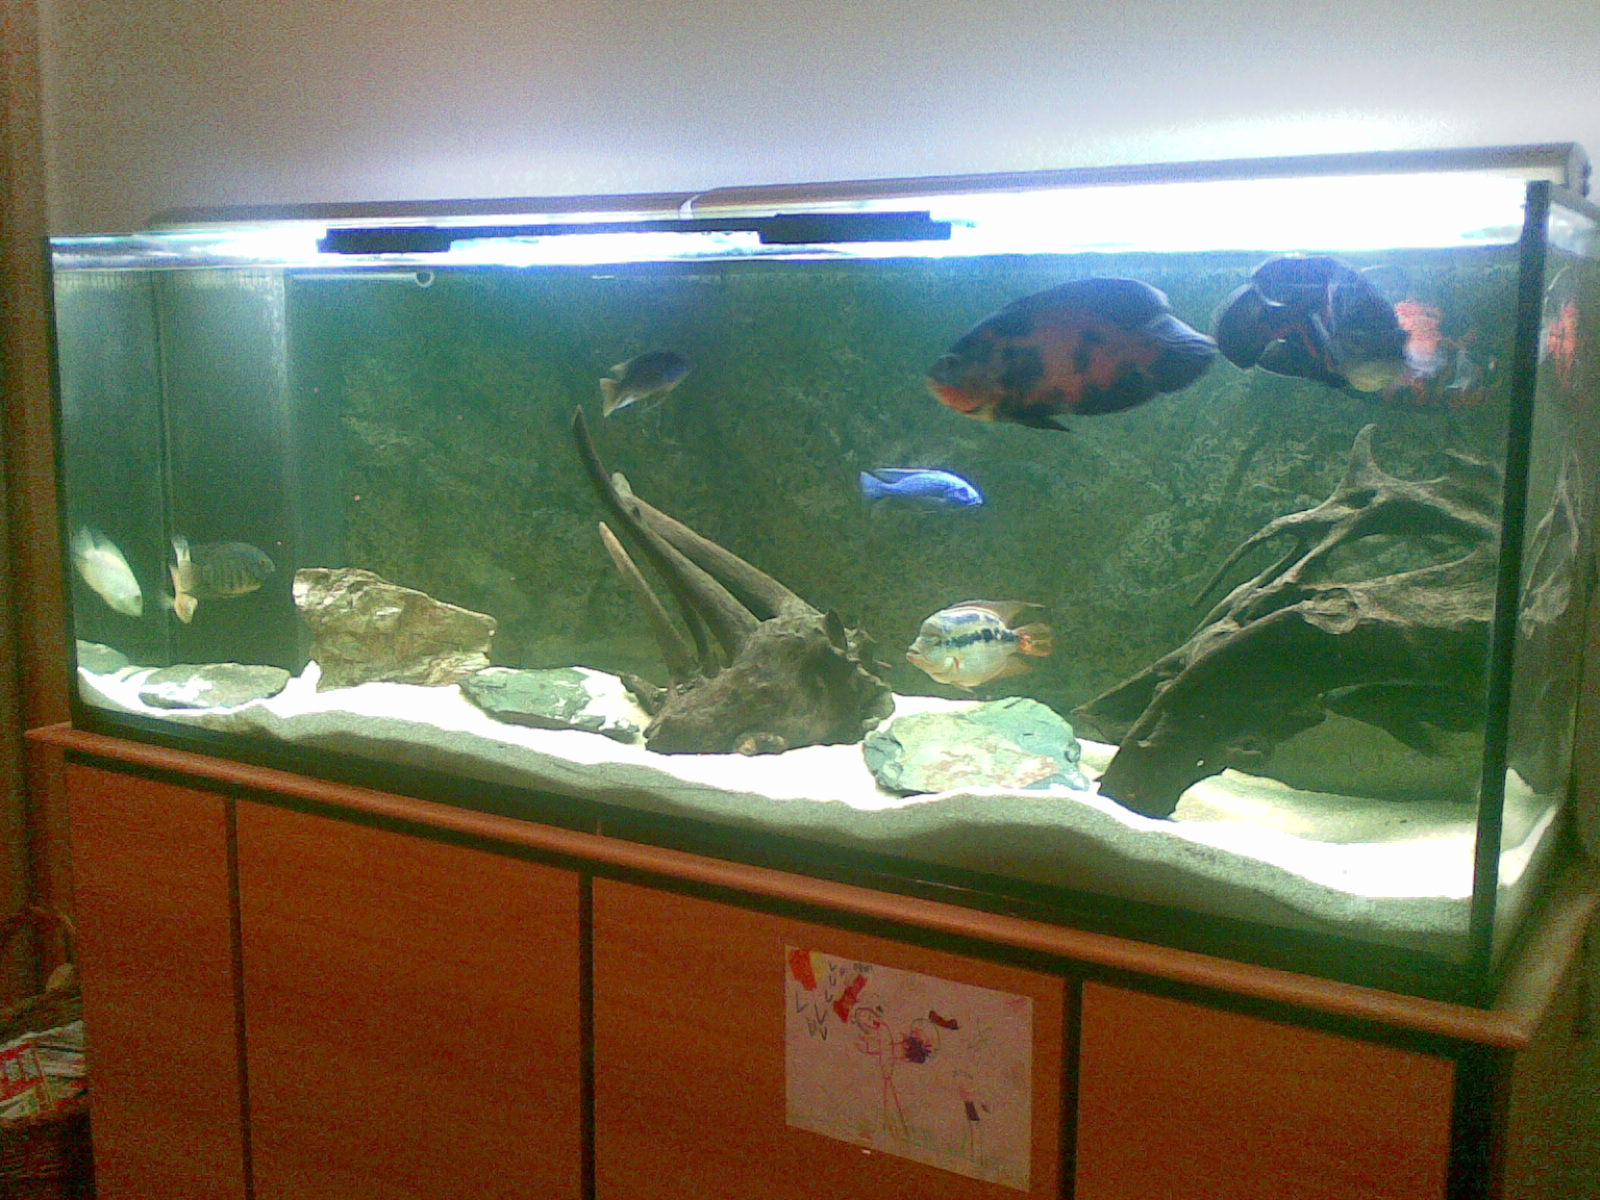 3203403730 additionally Goldpaper2 2 20FD 20web together with More The Merrier Your  munity Aquarium in addition Fish Keepings Hall Of Shame also Peces Goldfish. on goldfish growth rate